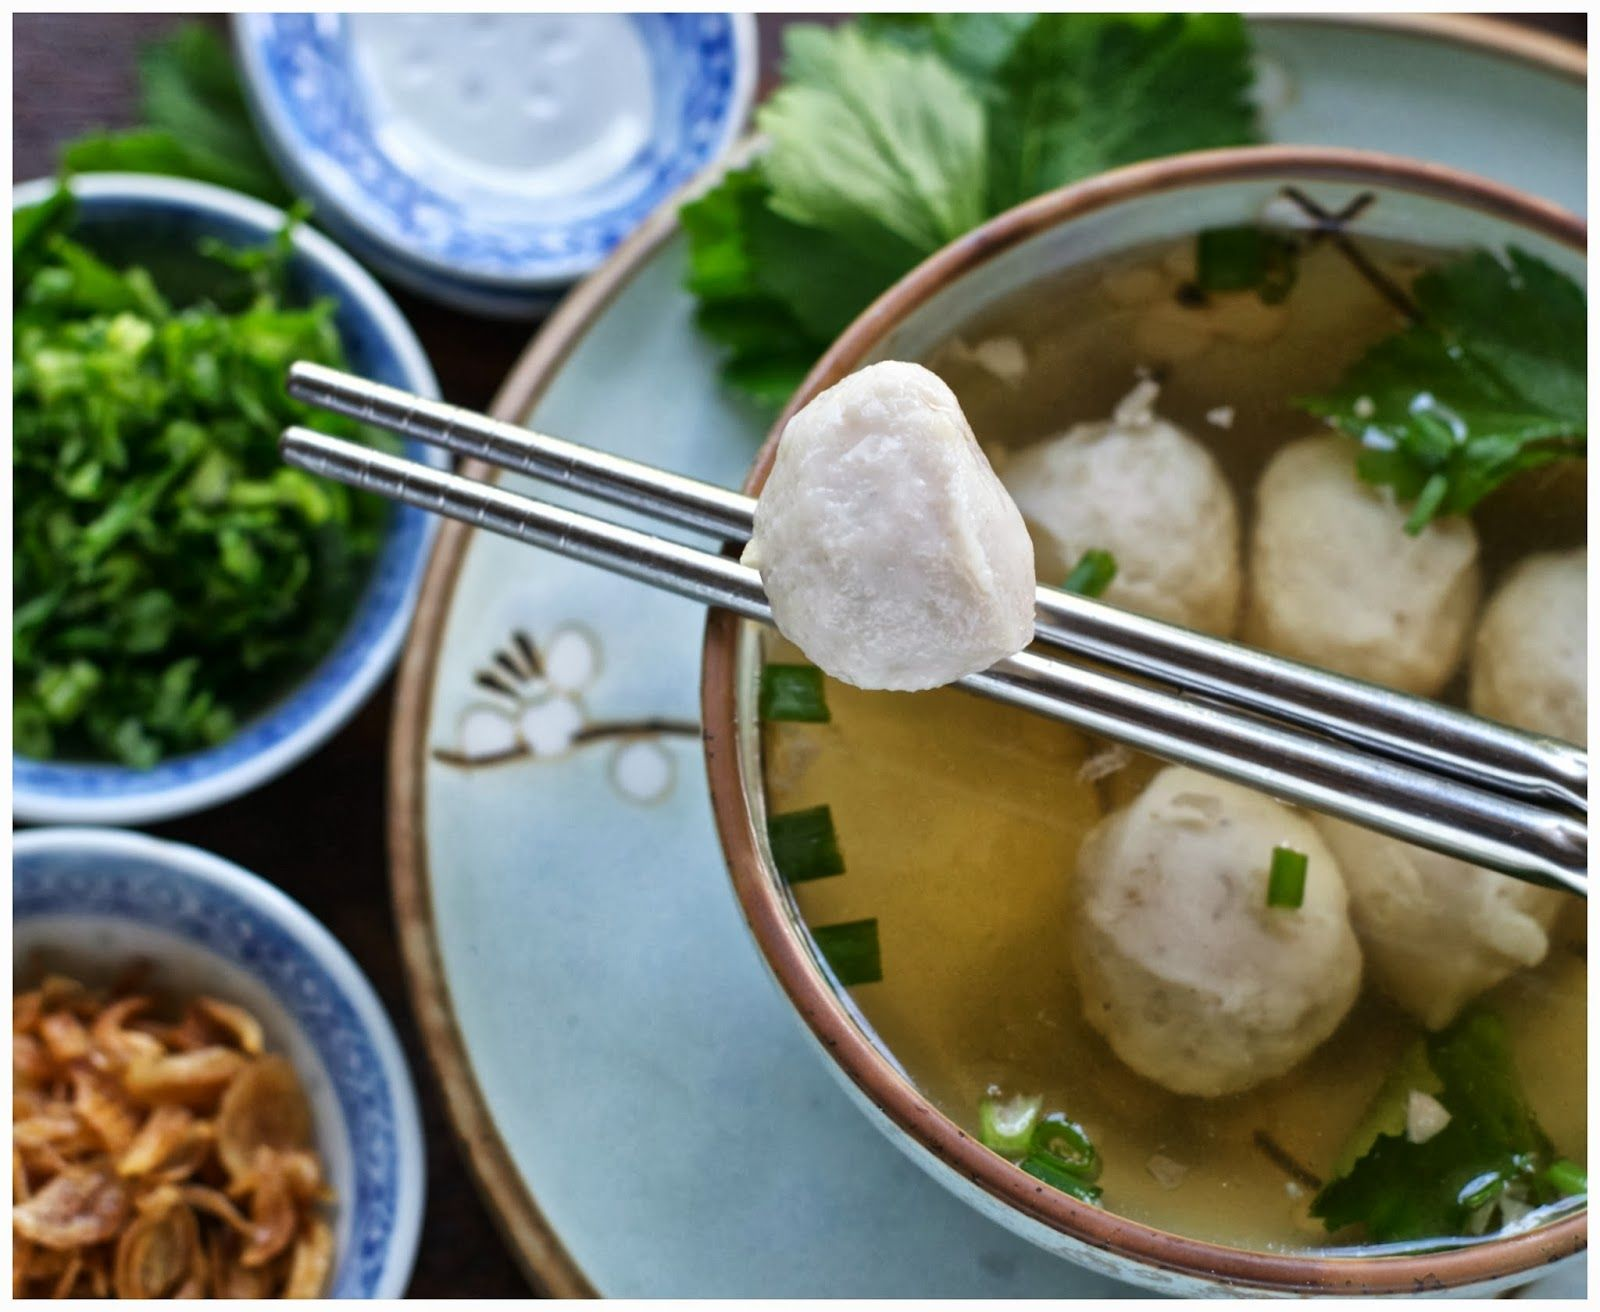 Can T Wait To Share This Recipe On How To Make A Bouncy Springy And Tasty Fish Ball I Ve Been Trying Many Recipes Eve Masakan Indonesia Resep Makanan Masakan